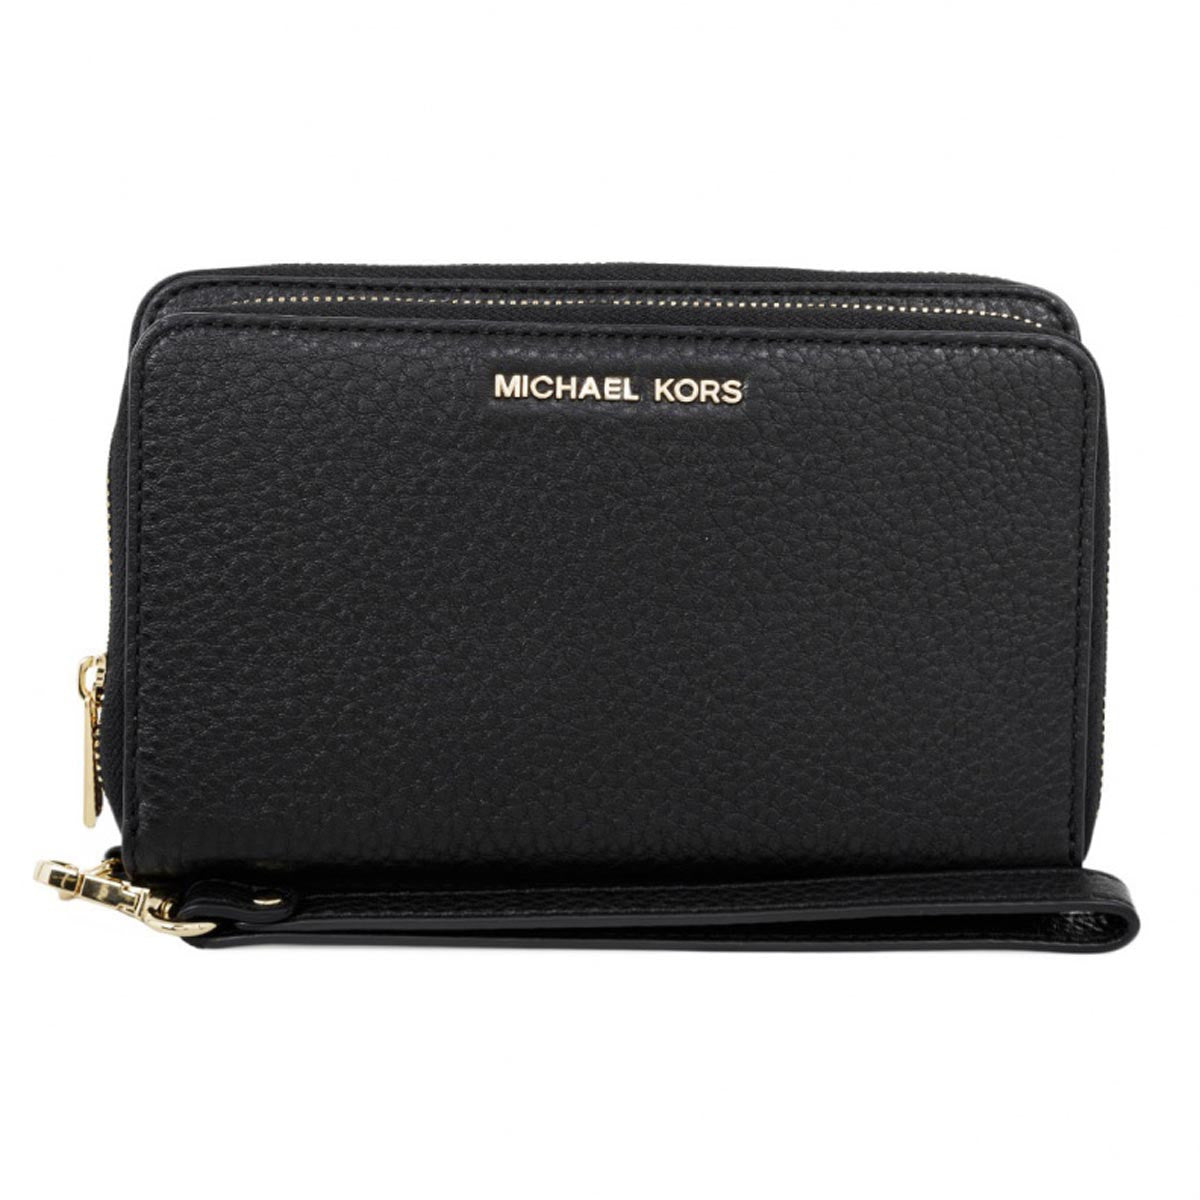 Michael Kors 32H5GAFE1L-001 Women's Adele Double-Zip Black Leather Wristlett Wallet